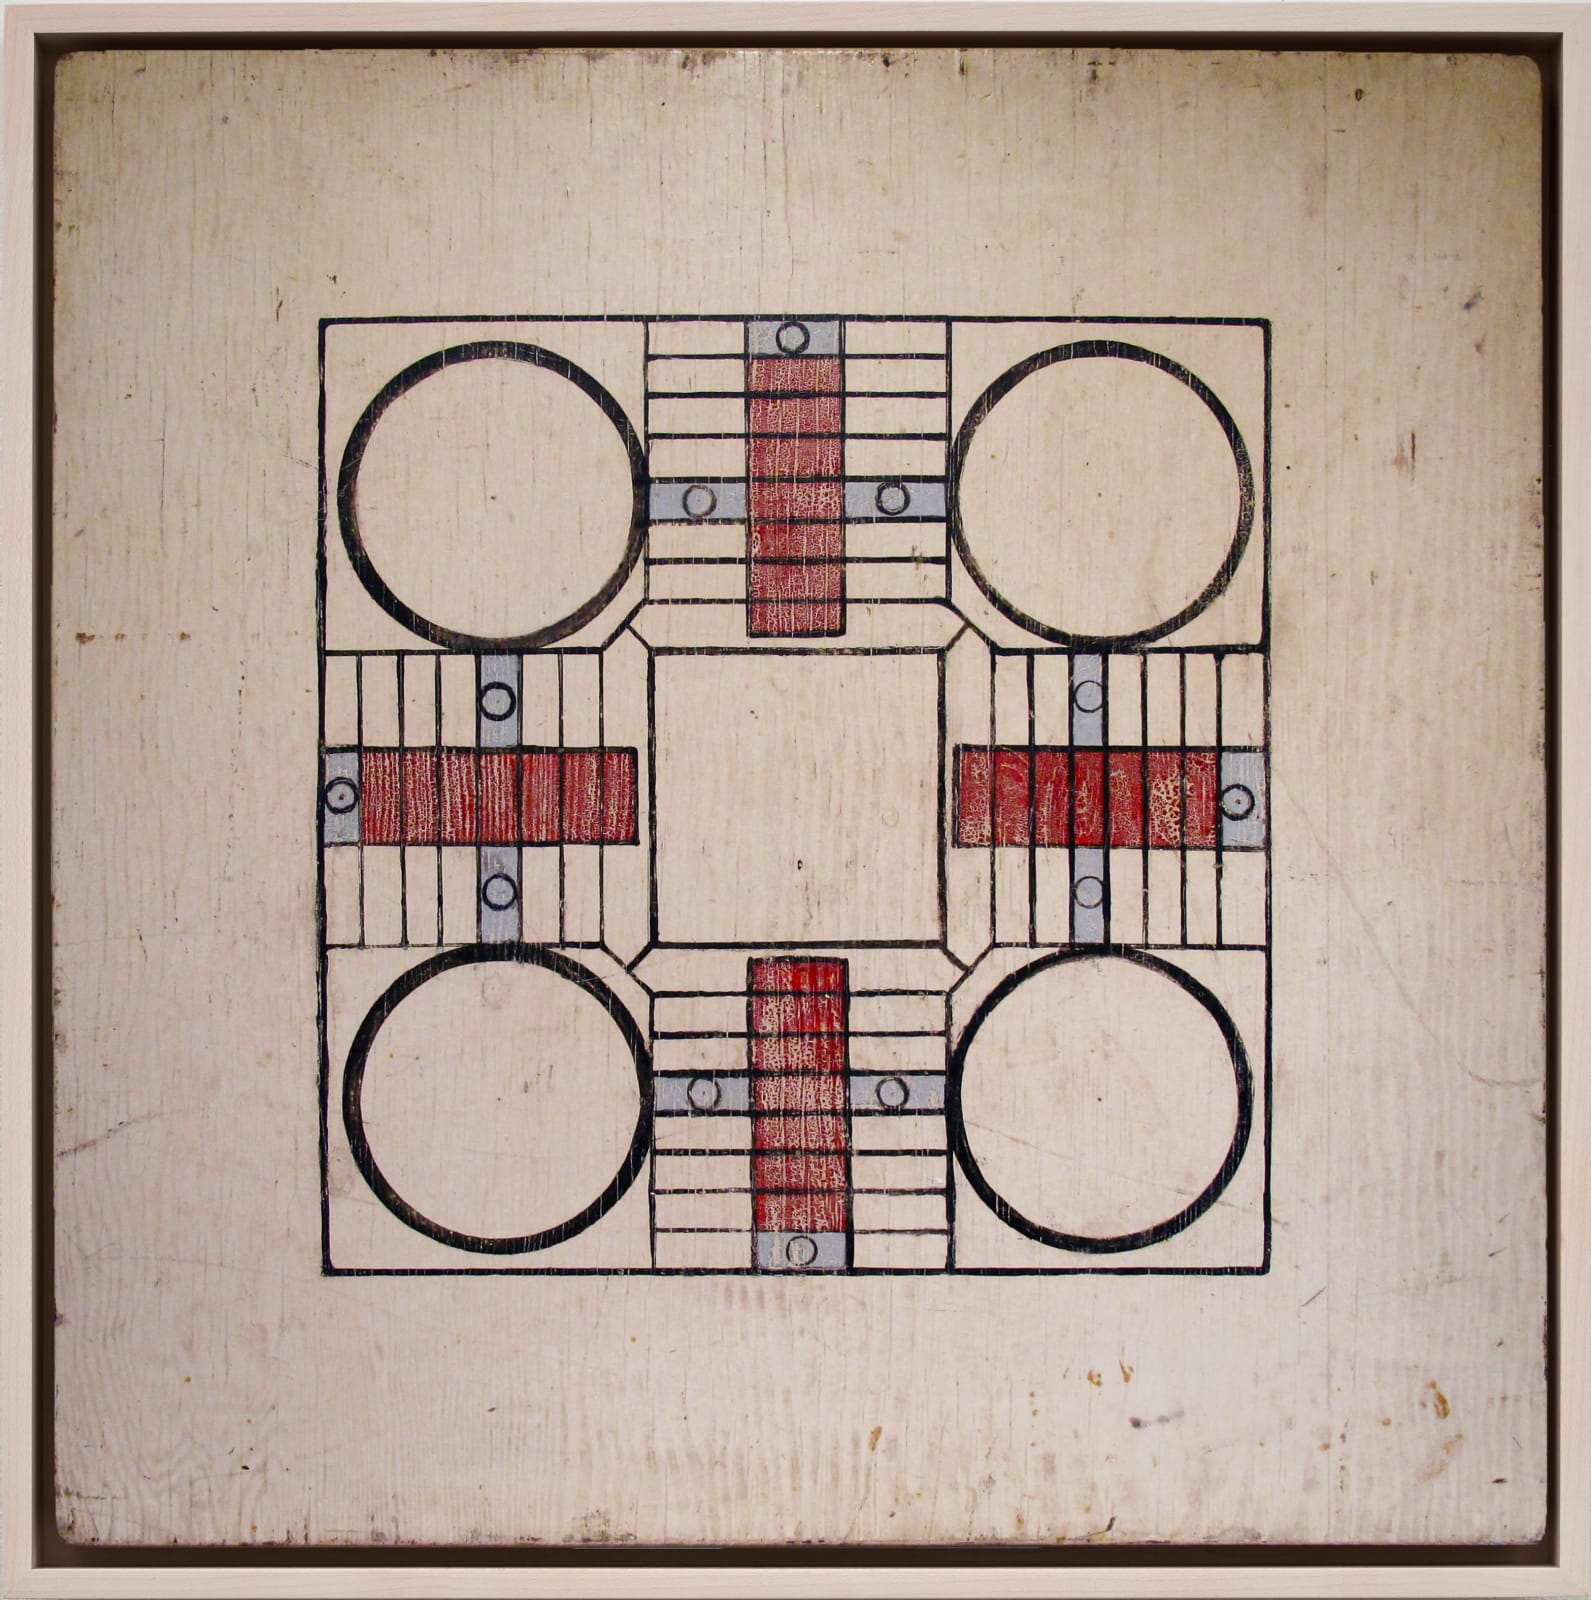 MINIMAL PARCHEESI GAME BOARD, LATE 1940S-EARLY 1950S Oil enamel on wood 30 x 30 3/4 in. 76.2 x 78.1 cm. (AU 291)